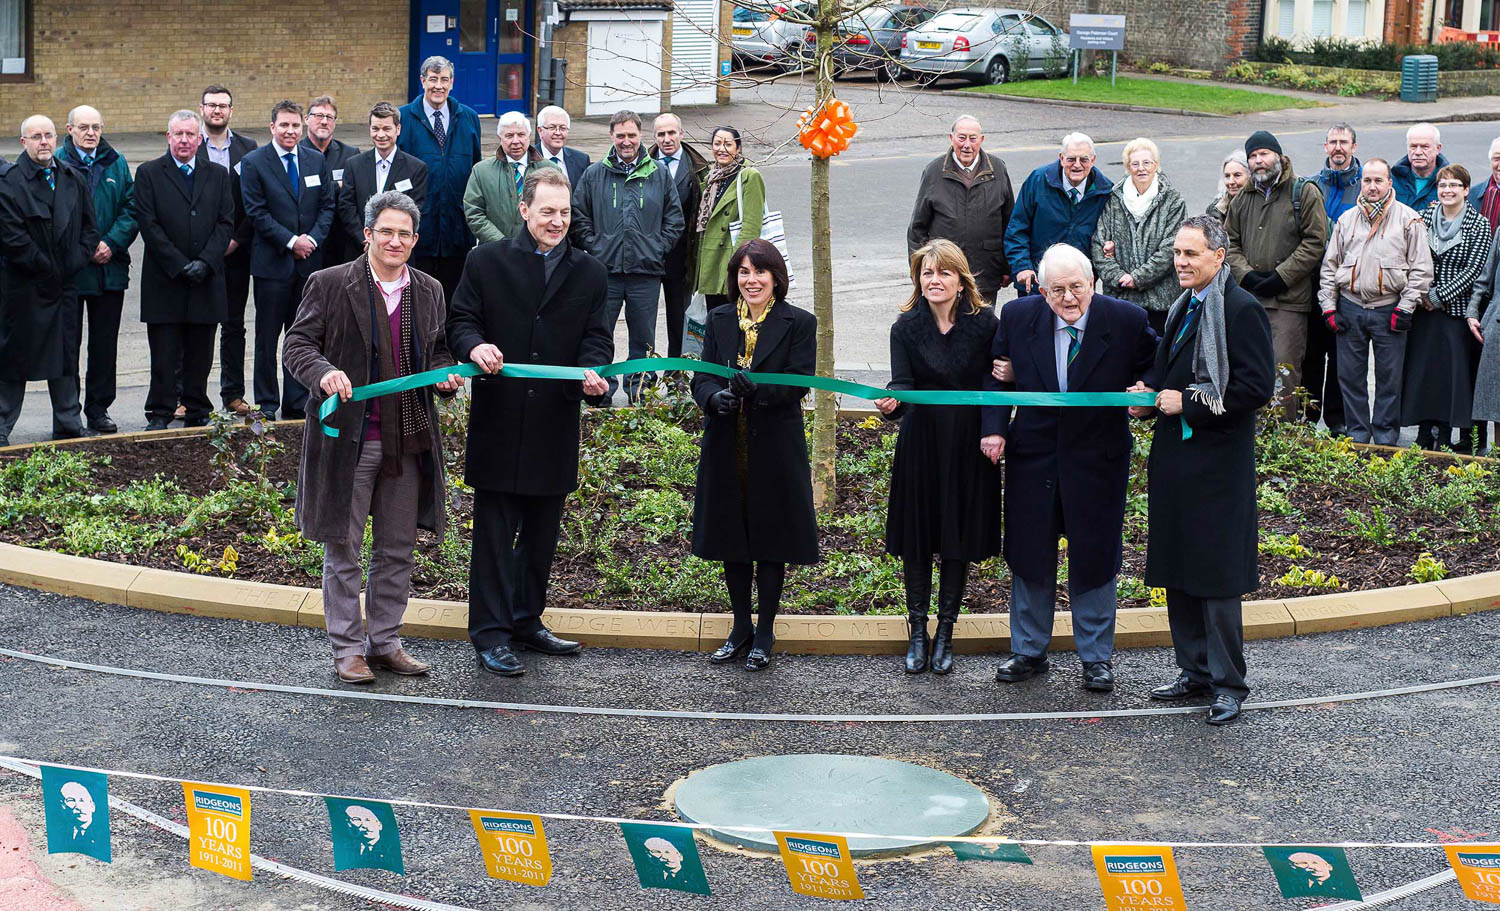 Ridgeons Pocket Park opening in Cambridge